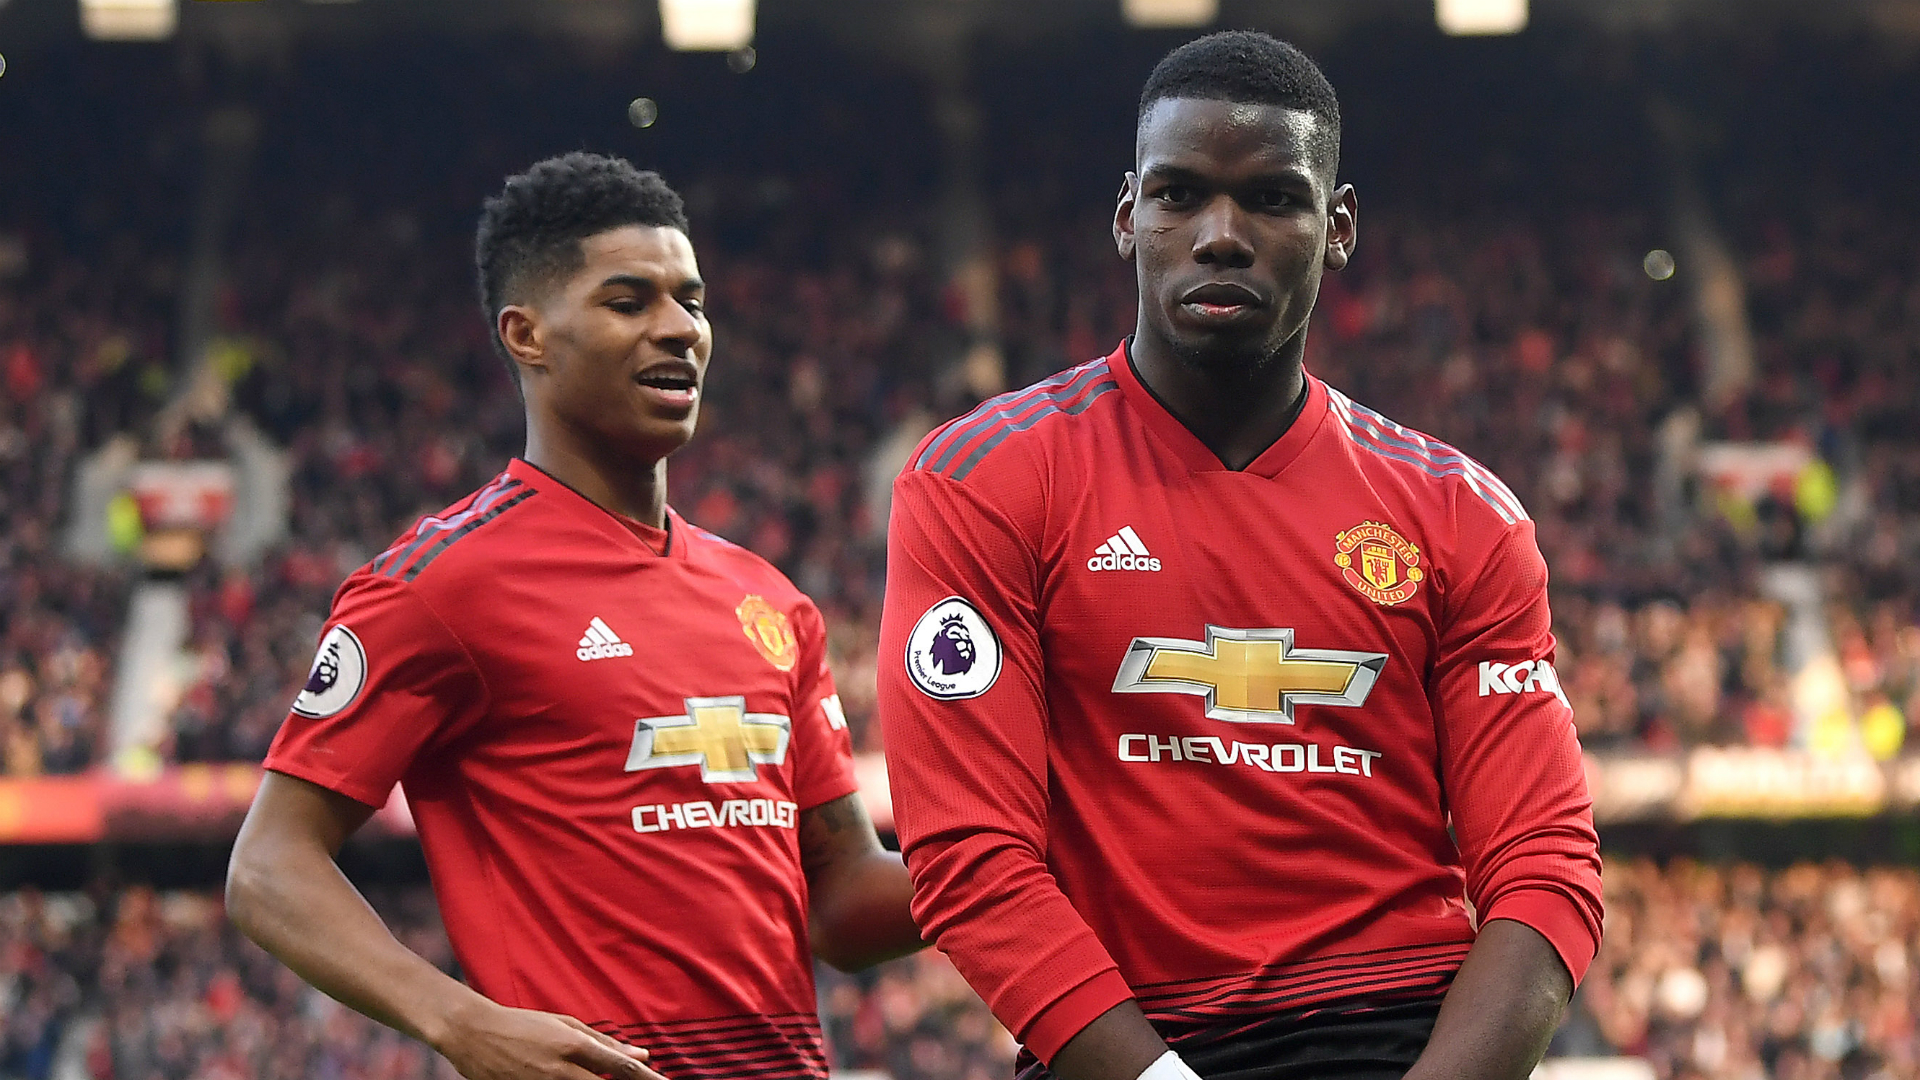 Man Utd duo Pogba and Rashford fit for Premier League restart